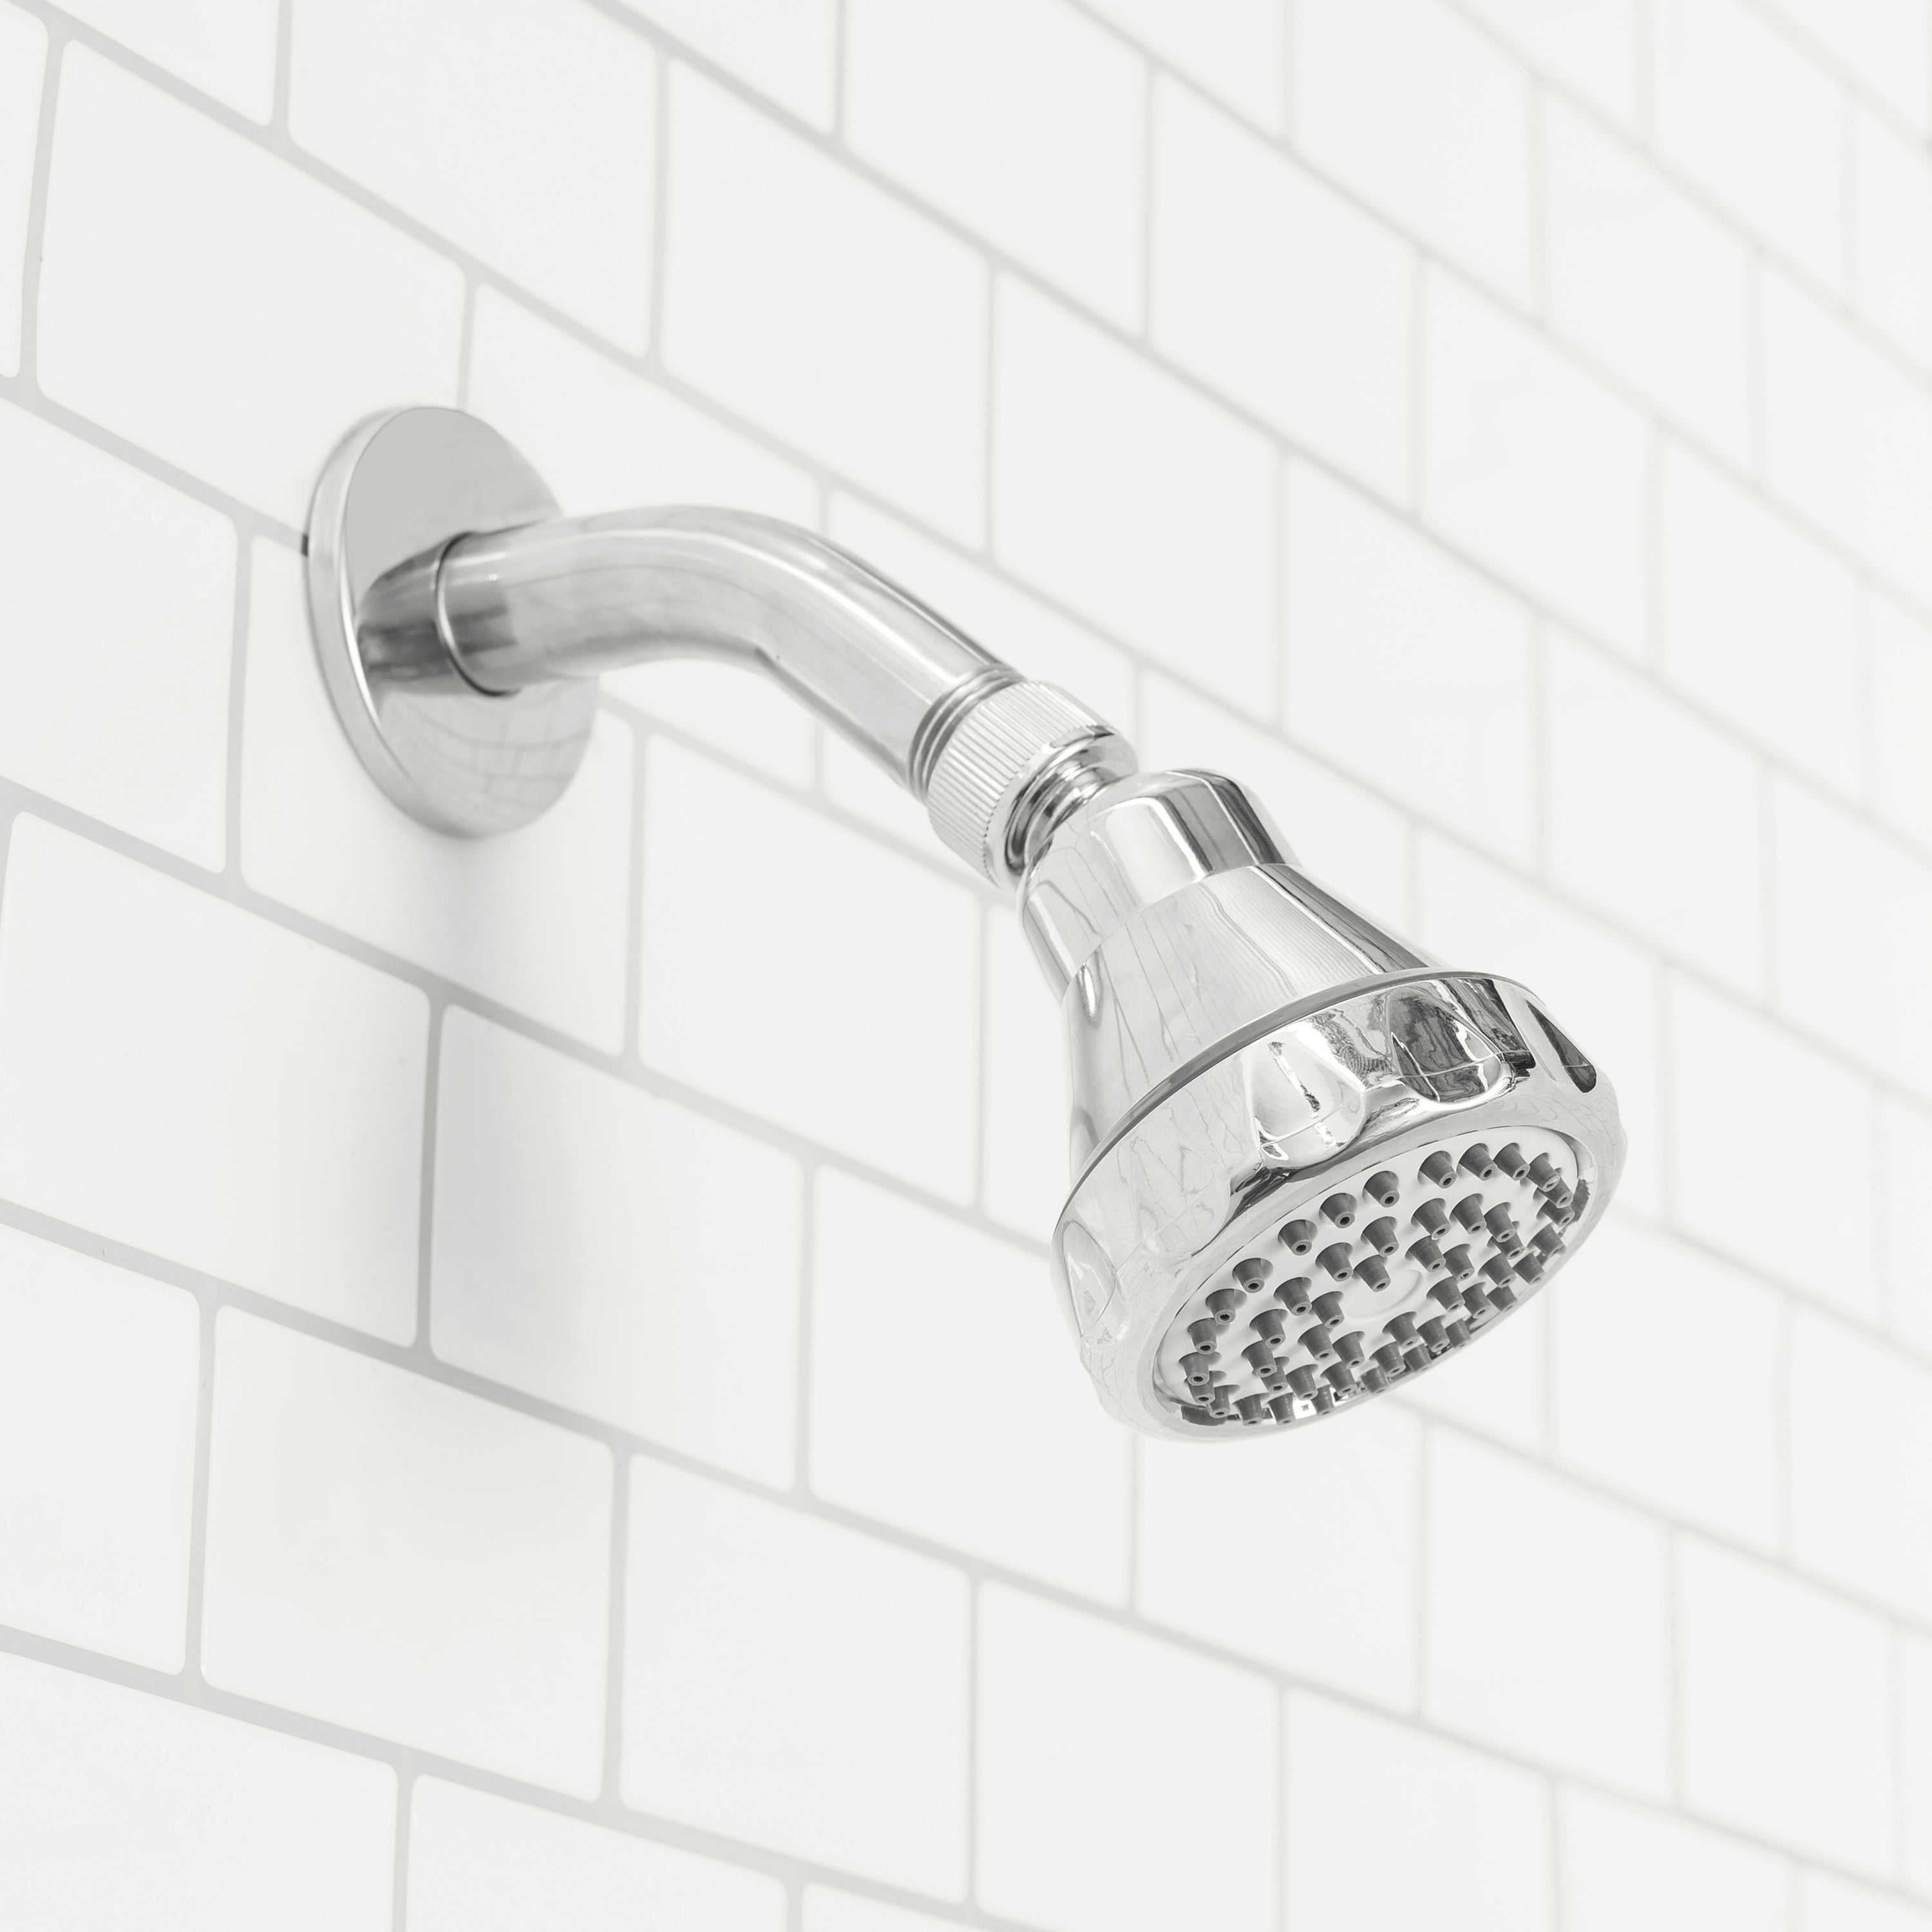 Sunbeam Oasis Single Function Fixed Shower Head, Chrome